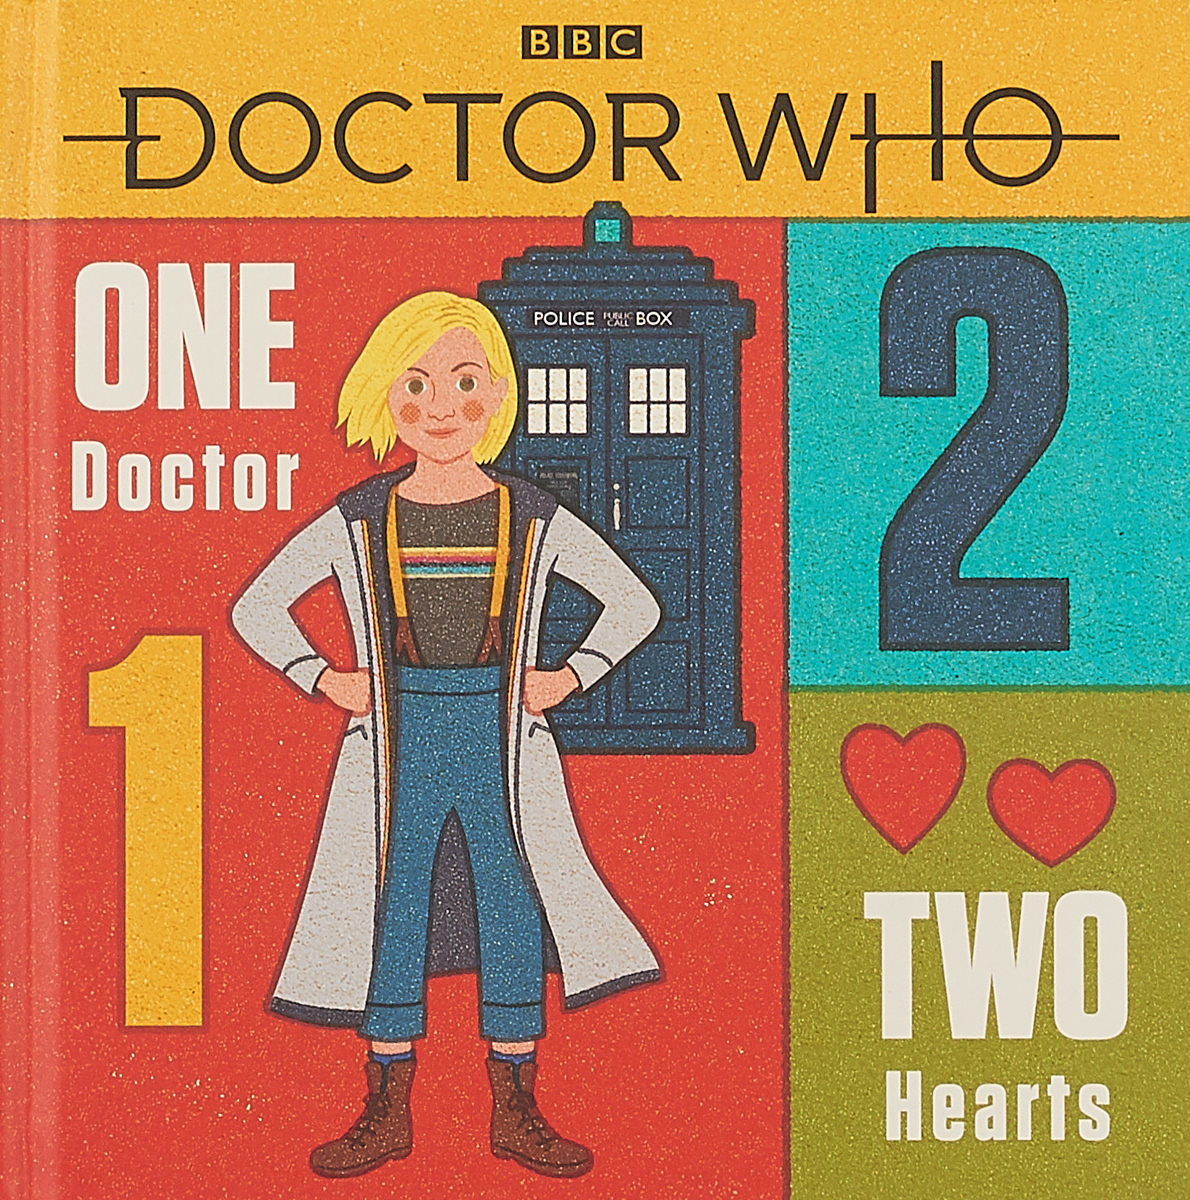 Doctor Who: One Doctor, Two Hearts: Level 2-6 рахманов а и певчие птицы page 9